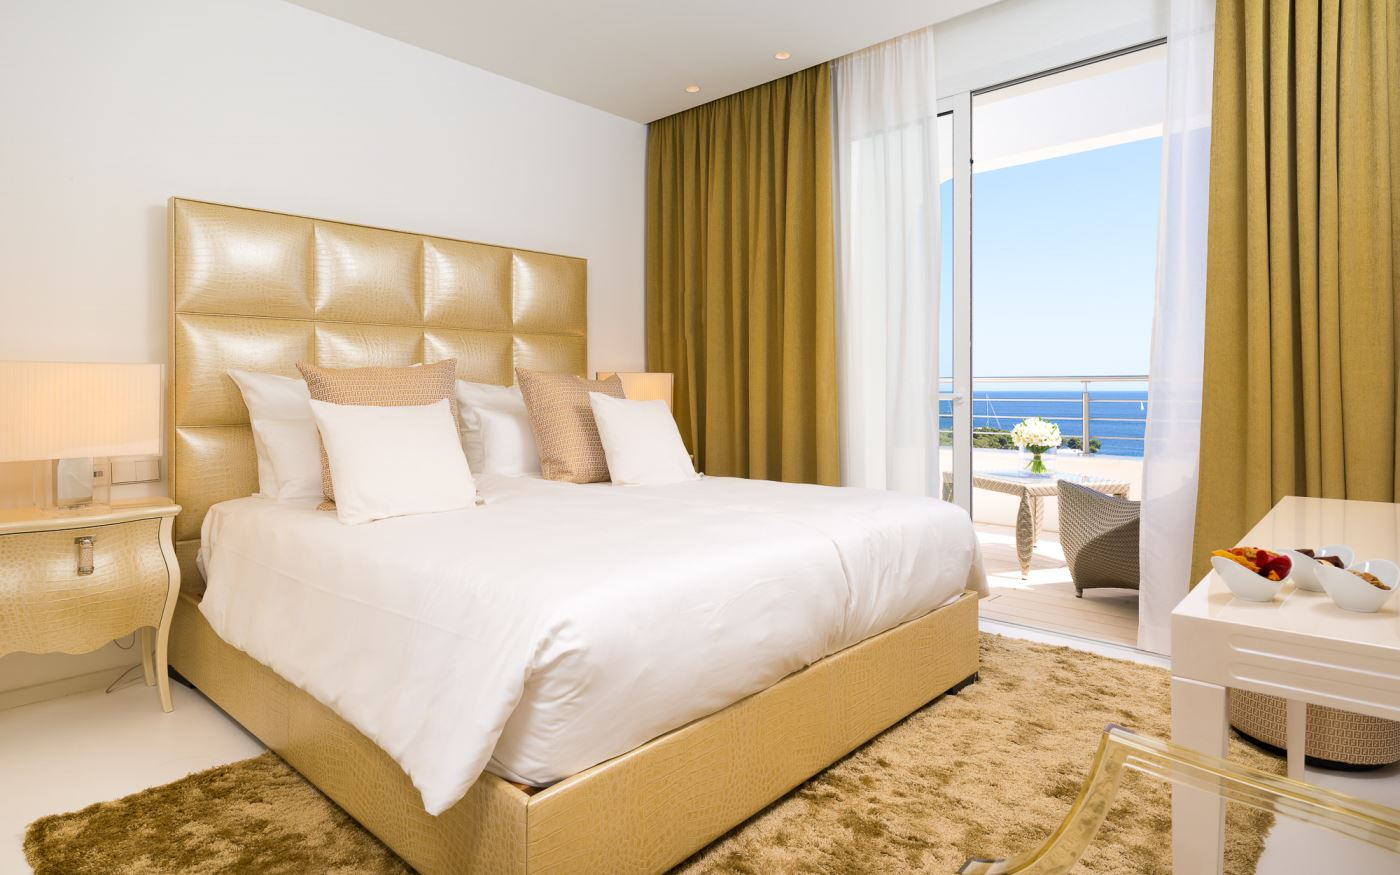 5 star Boutique Hotel on Mallorca